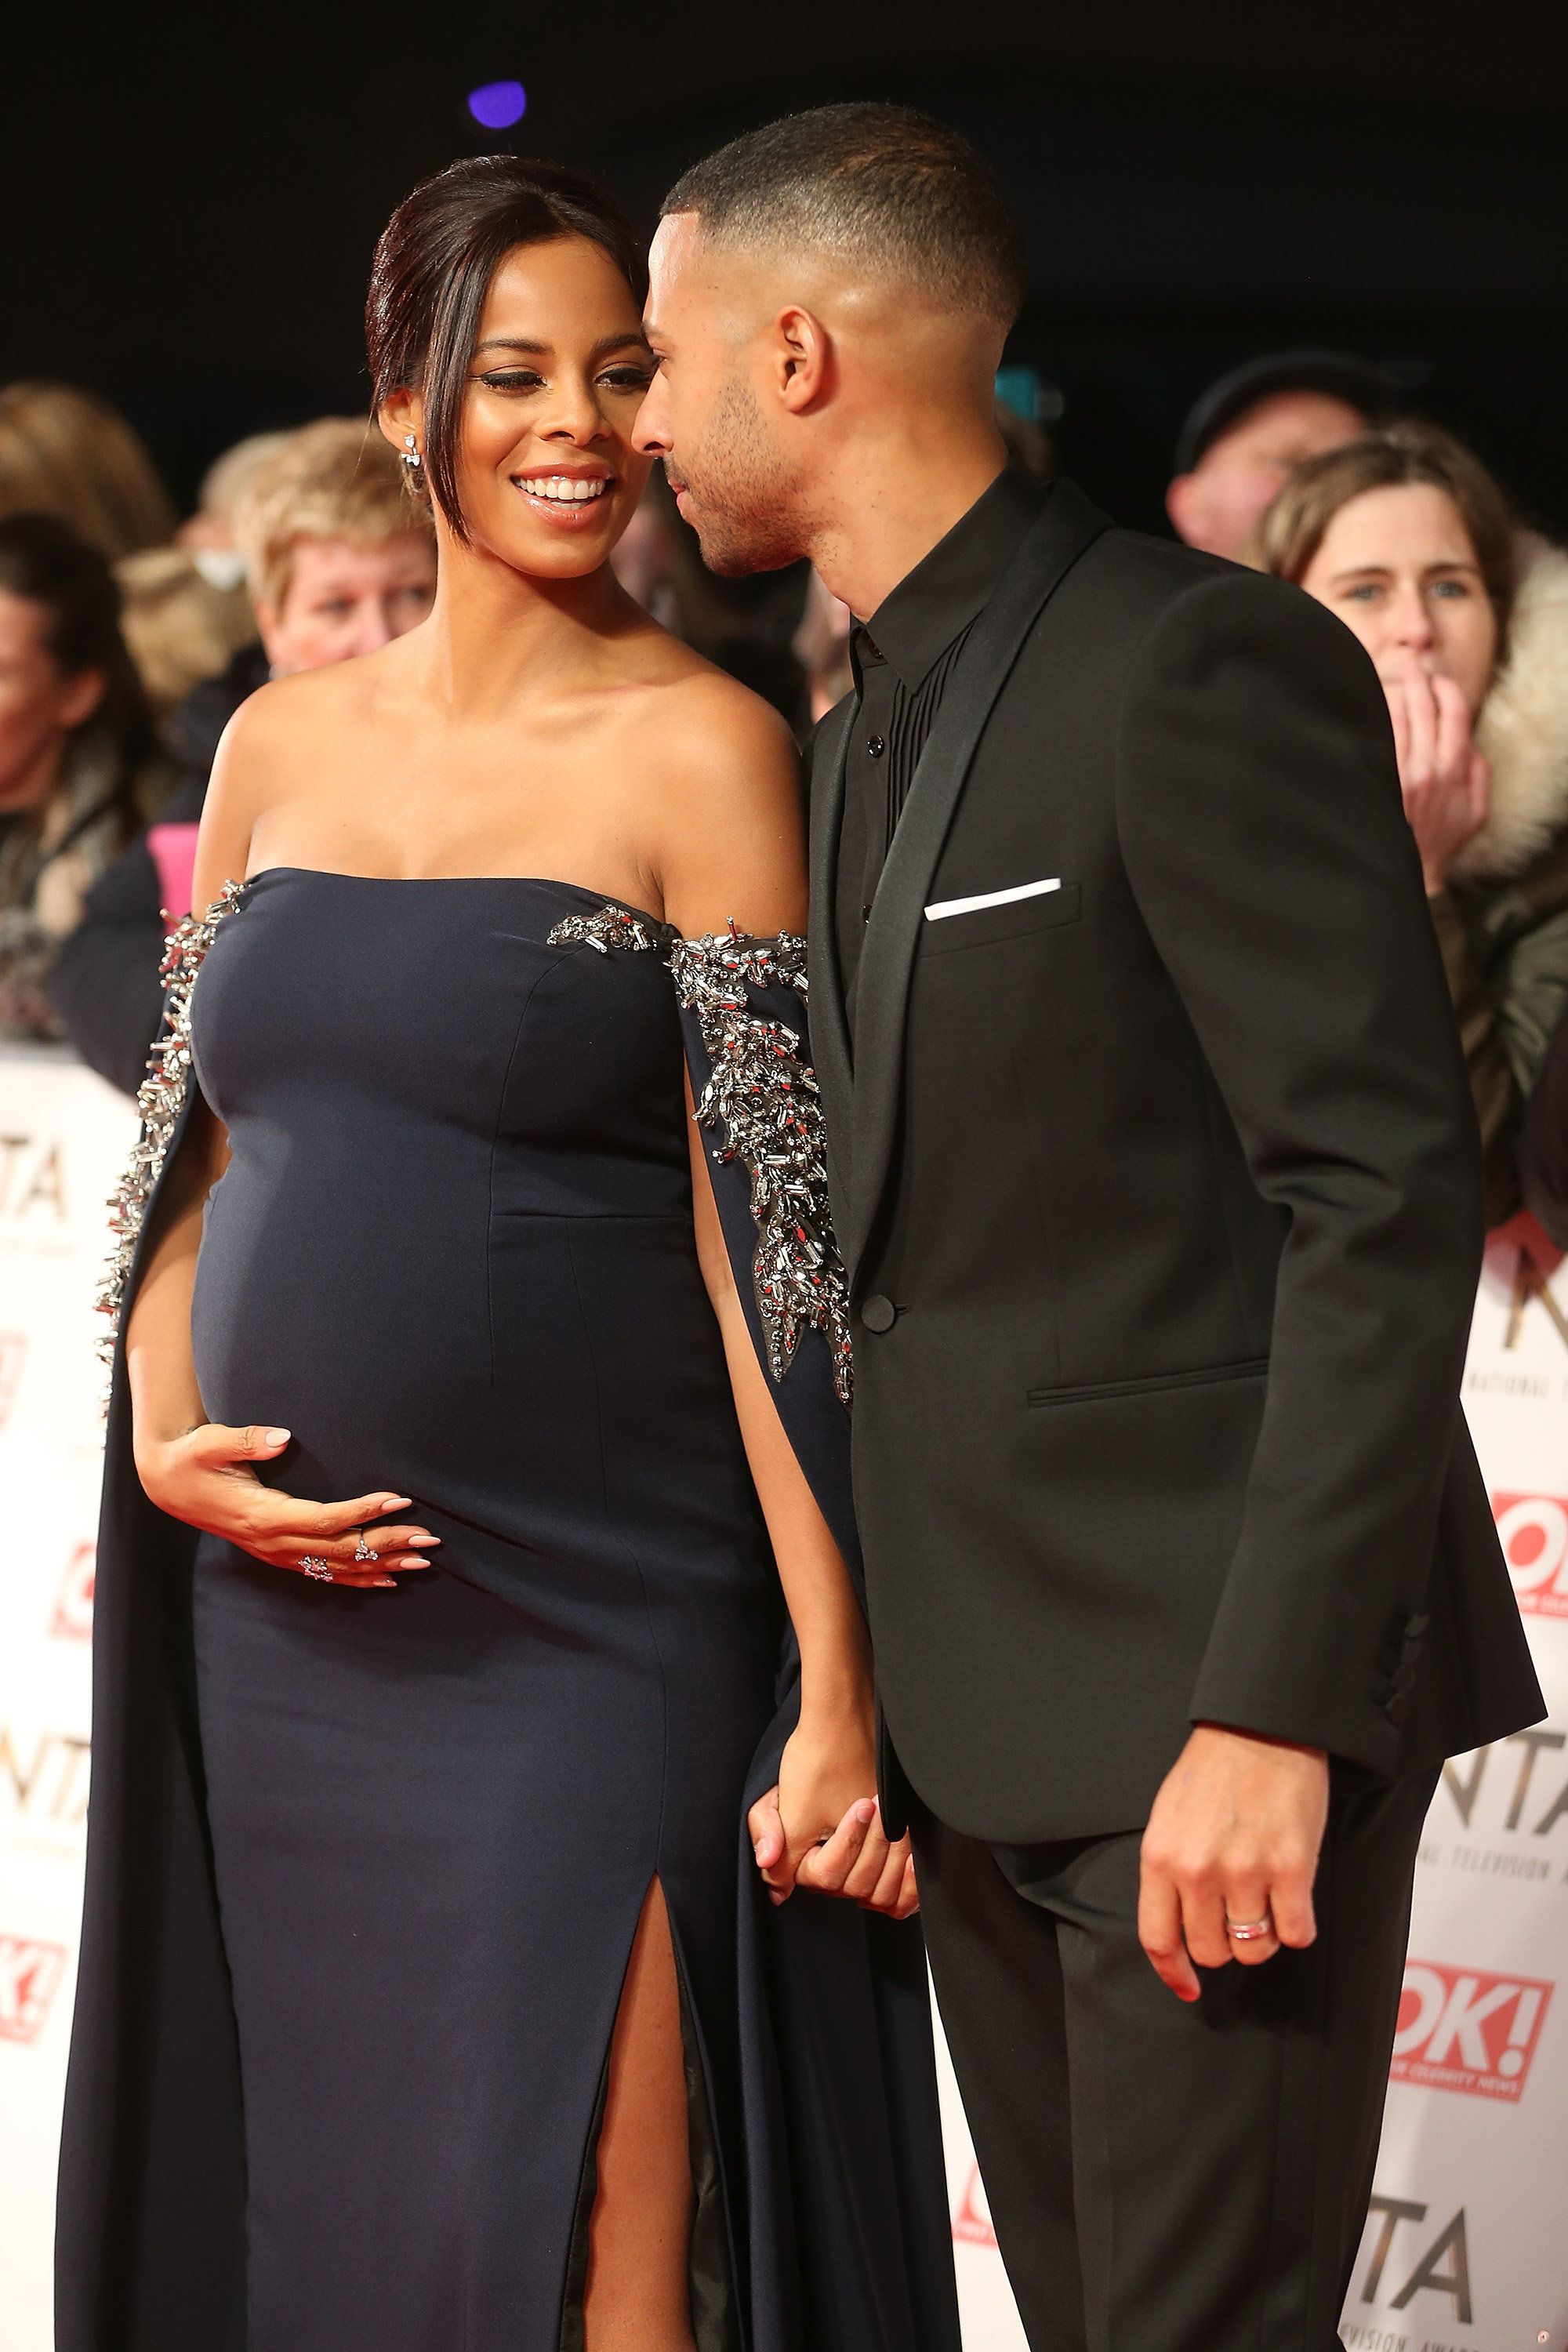 Rochelle Humes Has Given Birth To A Baby